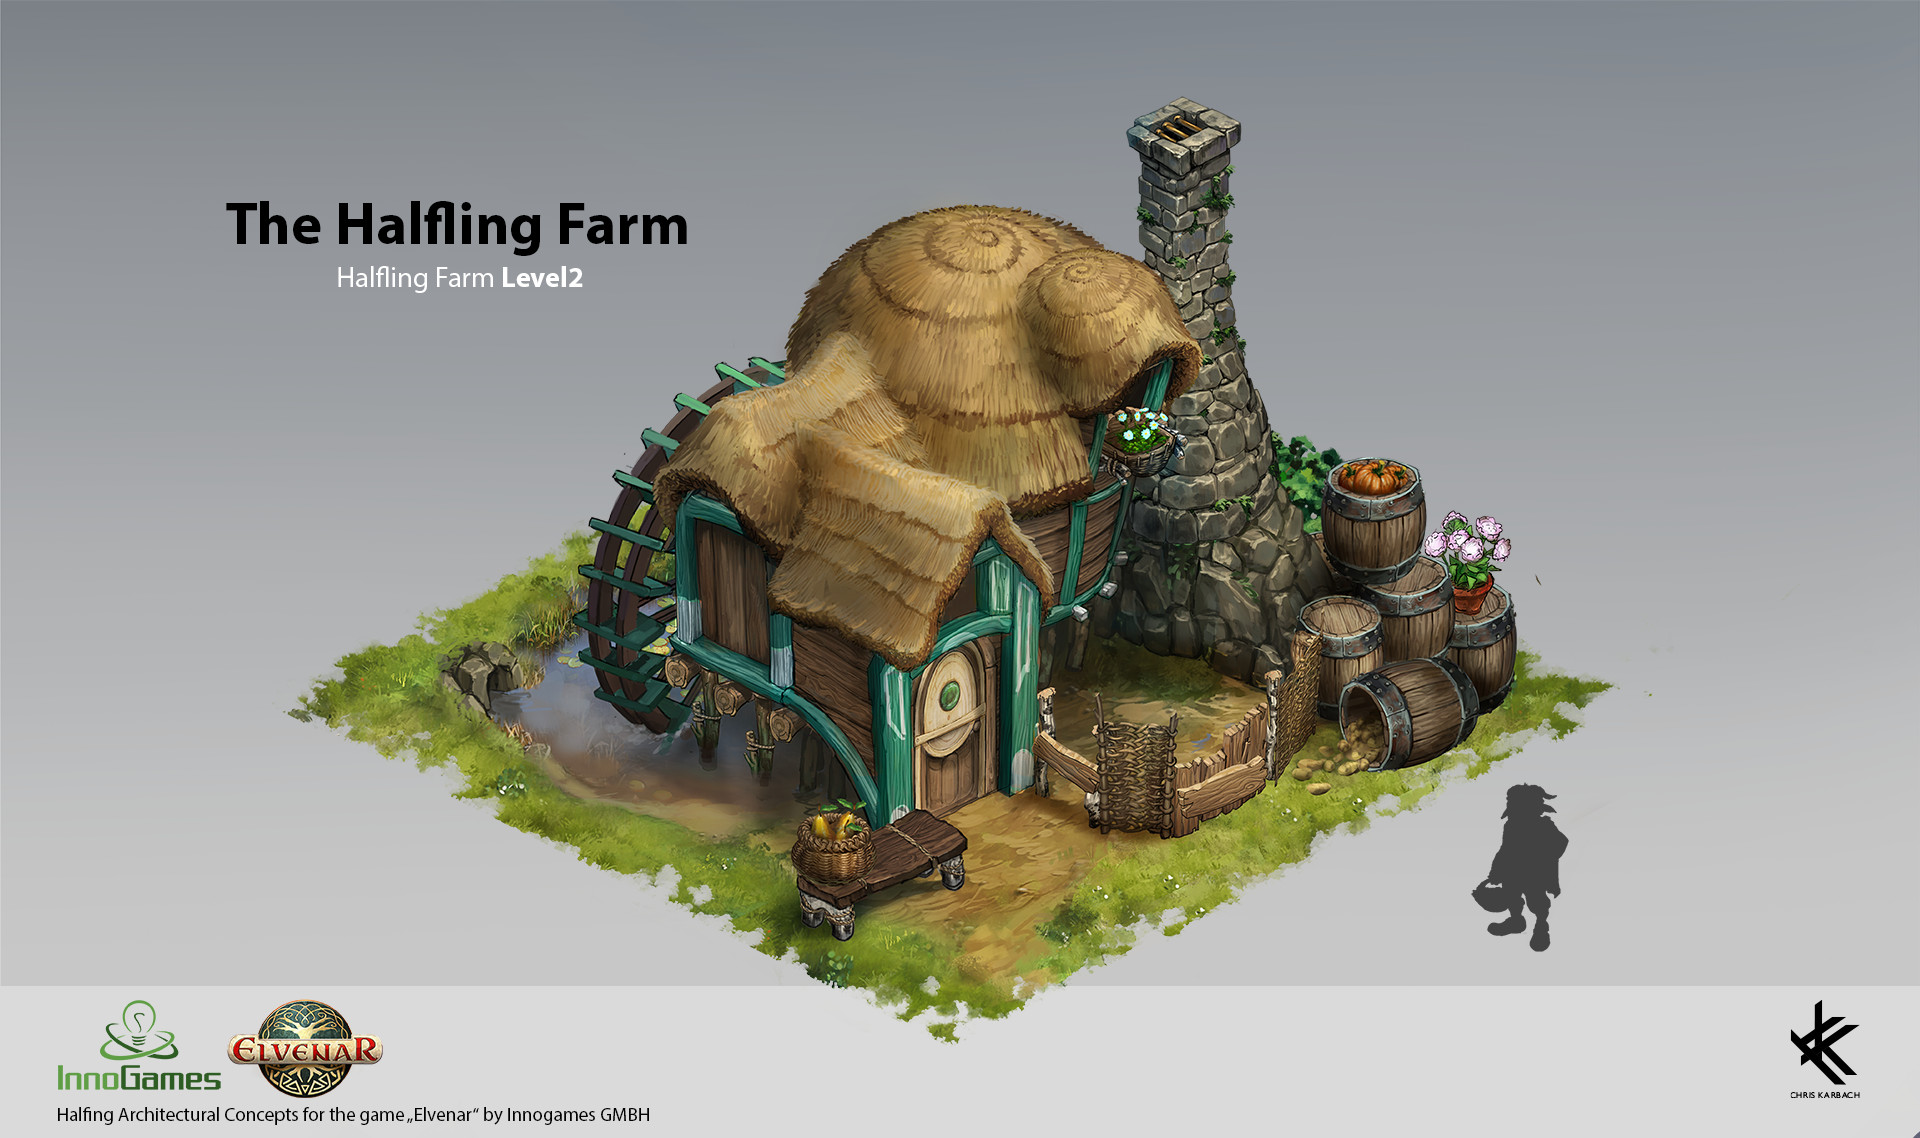 Halfling Farm Level 2